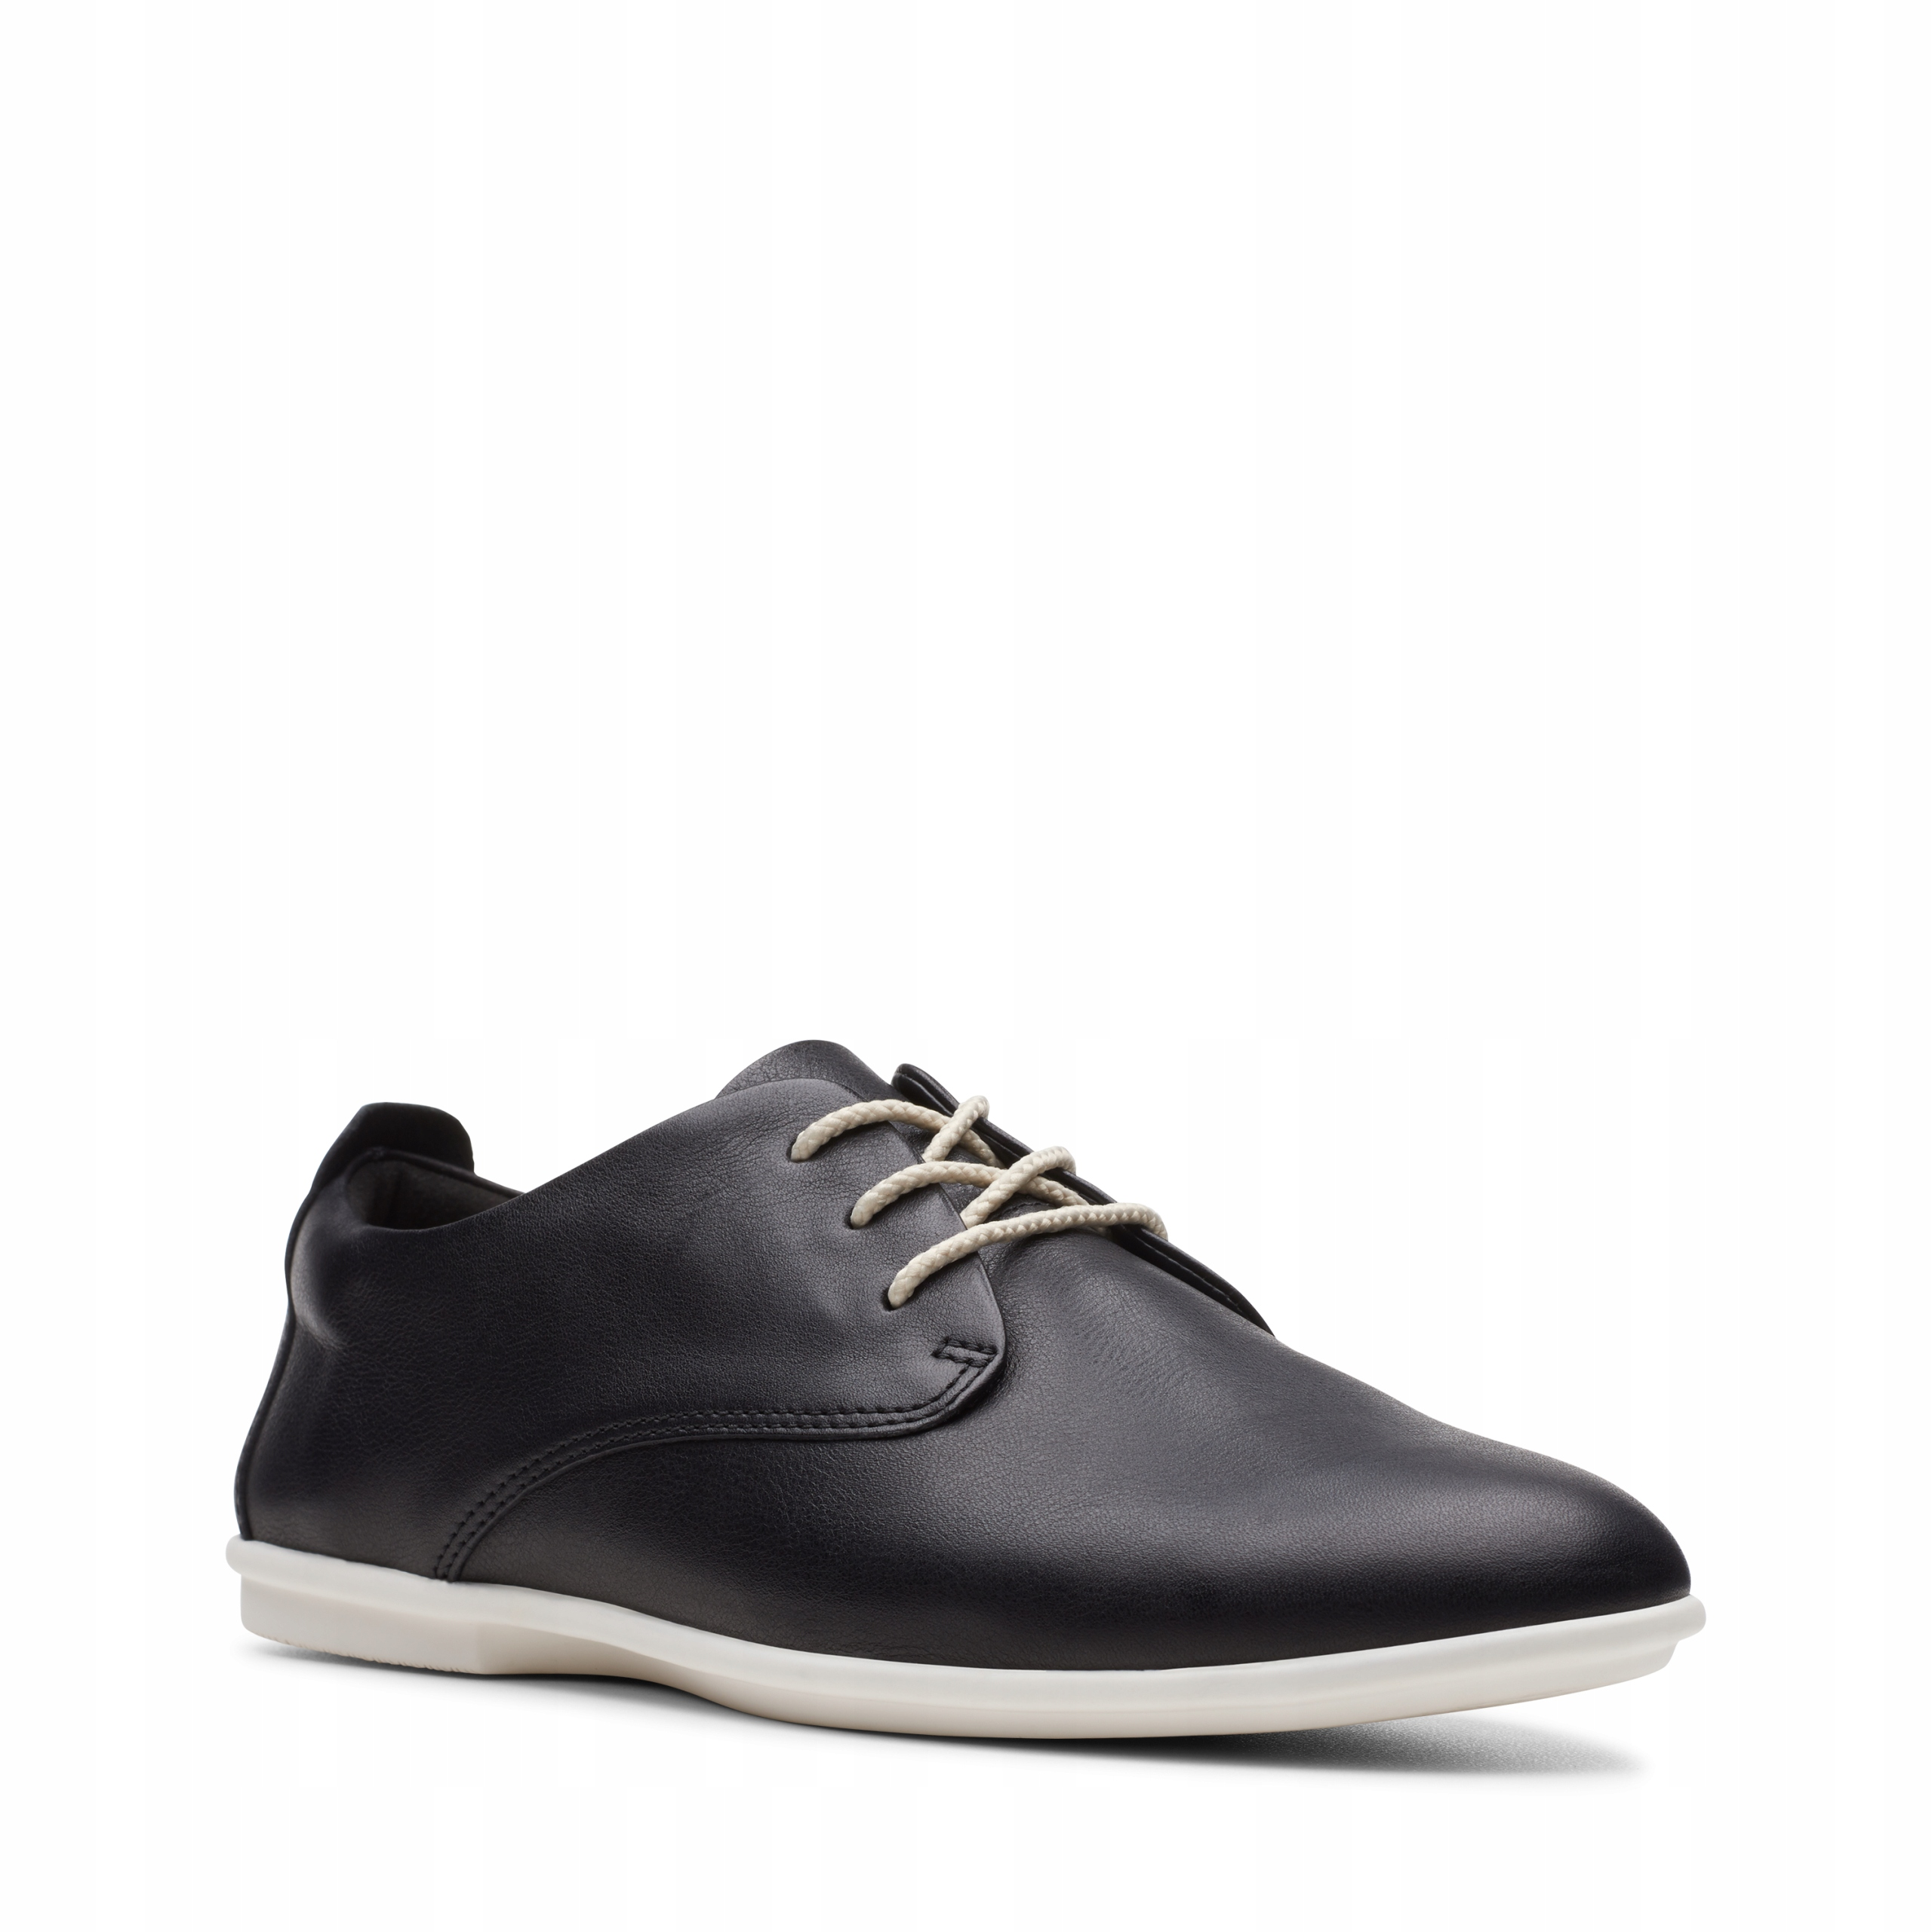 PÓŁBUTY CLARKS UN CORAL LACE Black Leather 37,5